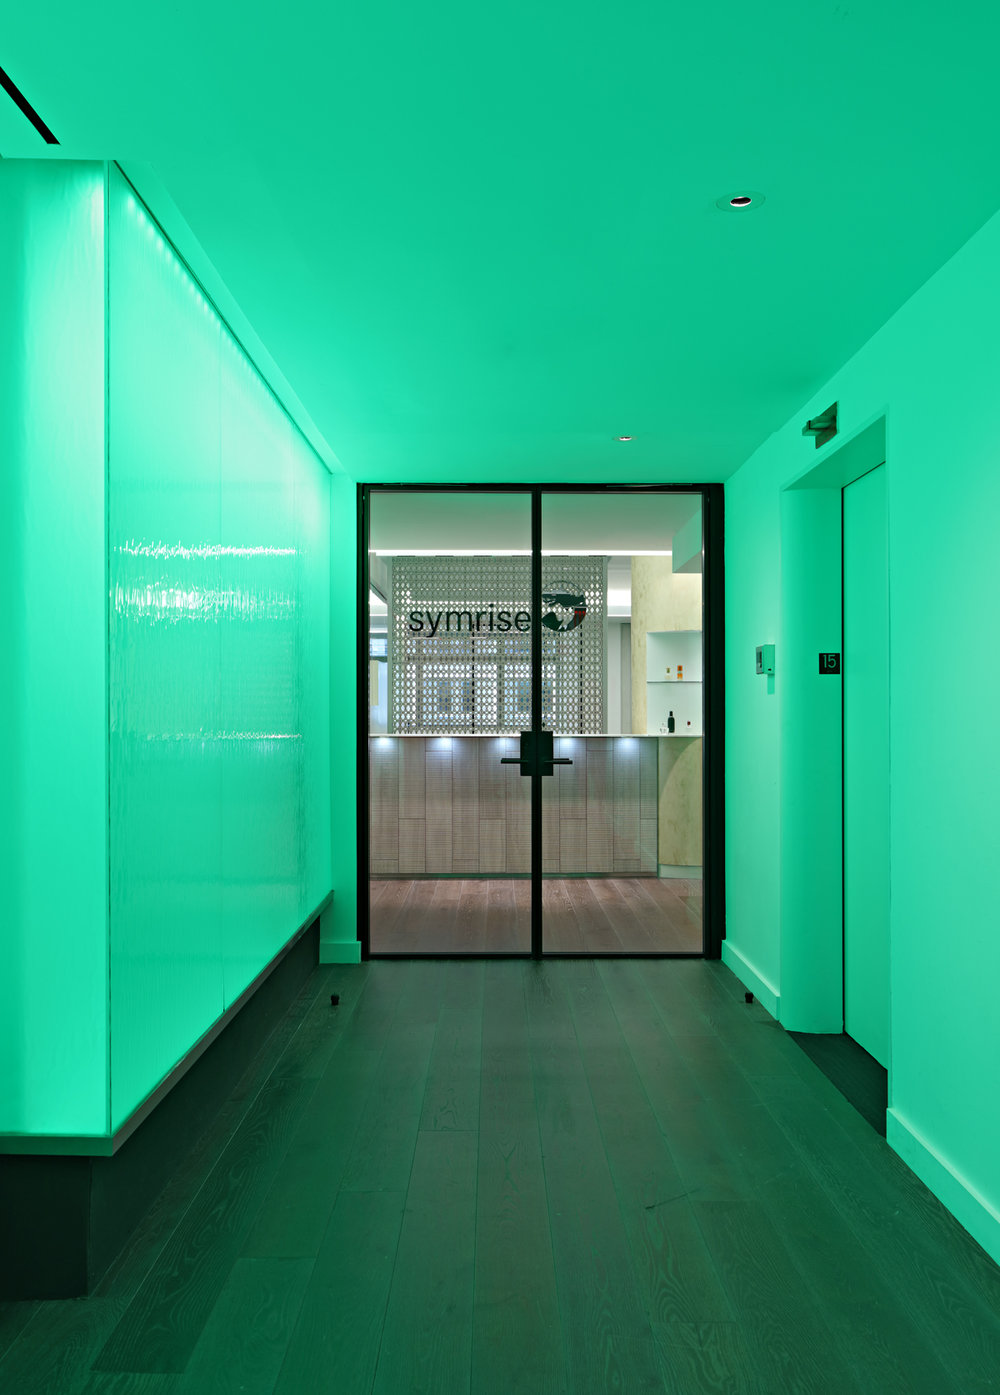 Green lit entrance to the reception area of Symrise offices facing a desk with lighting below the counter. MEP designed by 2LS Consulting Engineering.